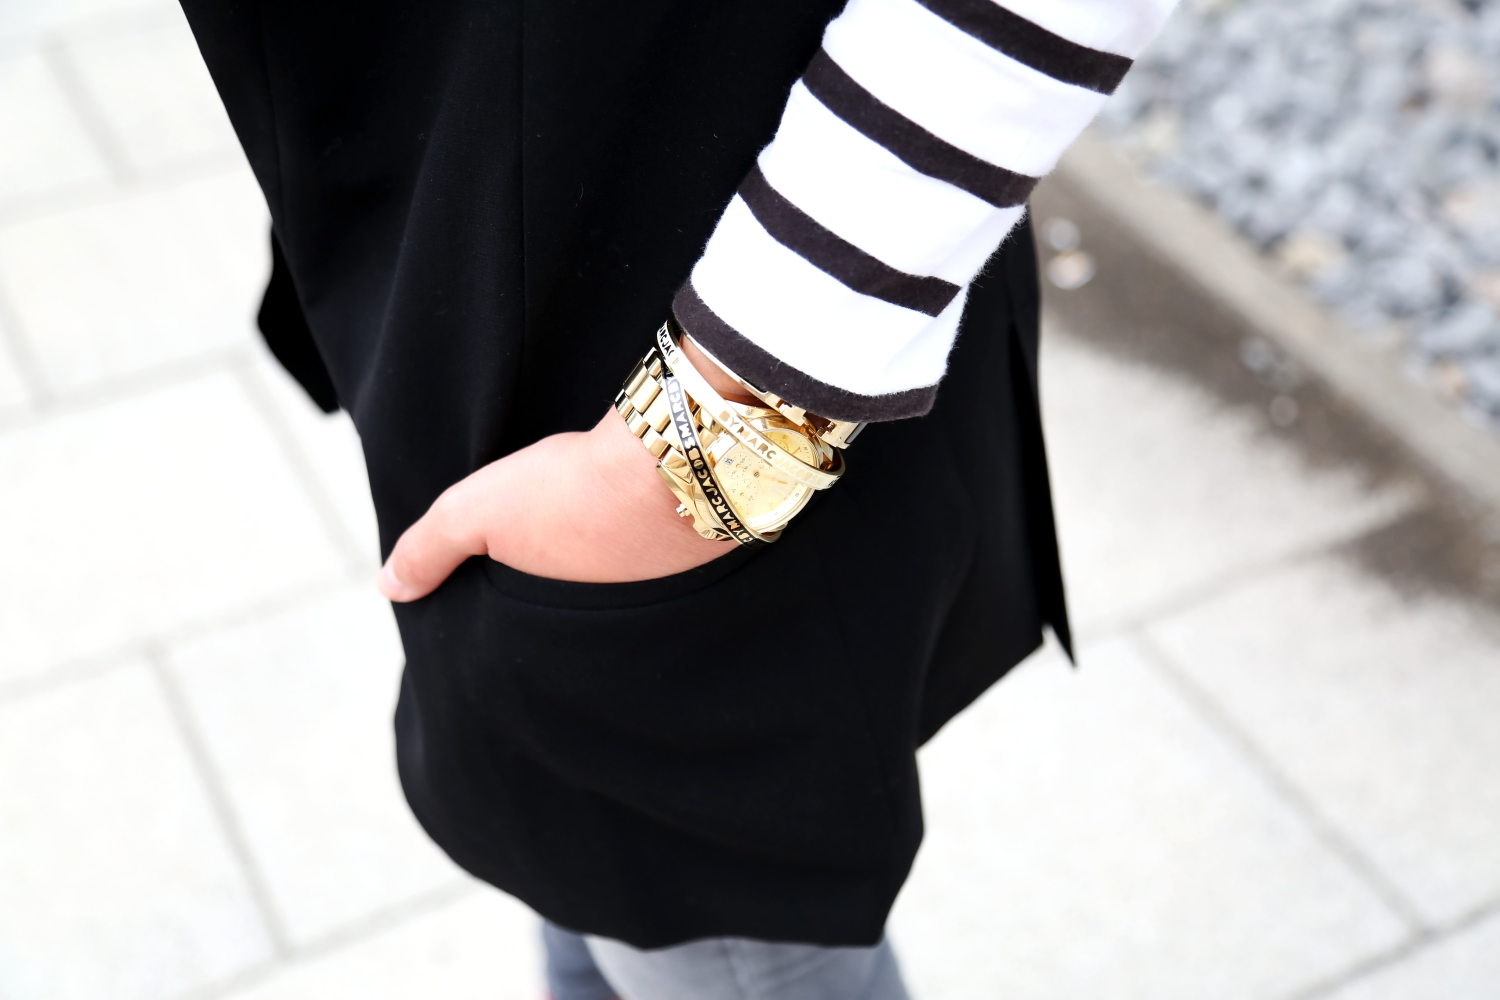 outfit-details-armcandy-michaelkors-watch-lexington-marcjacobs-bangle